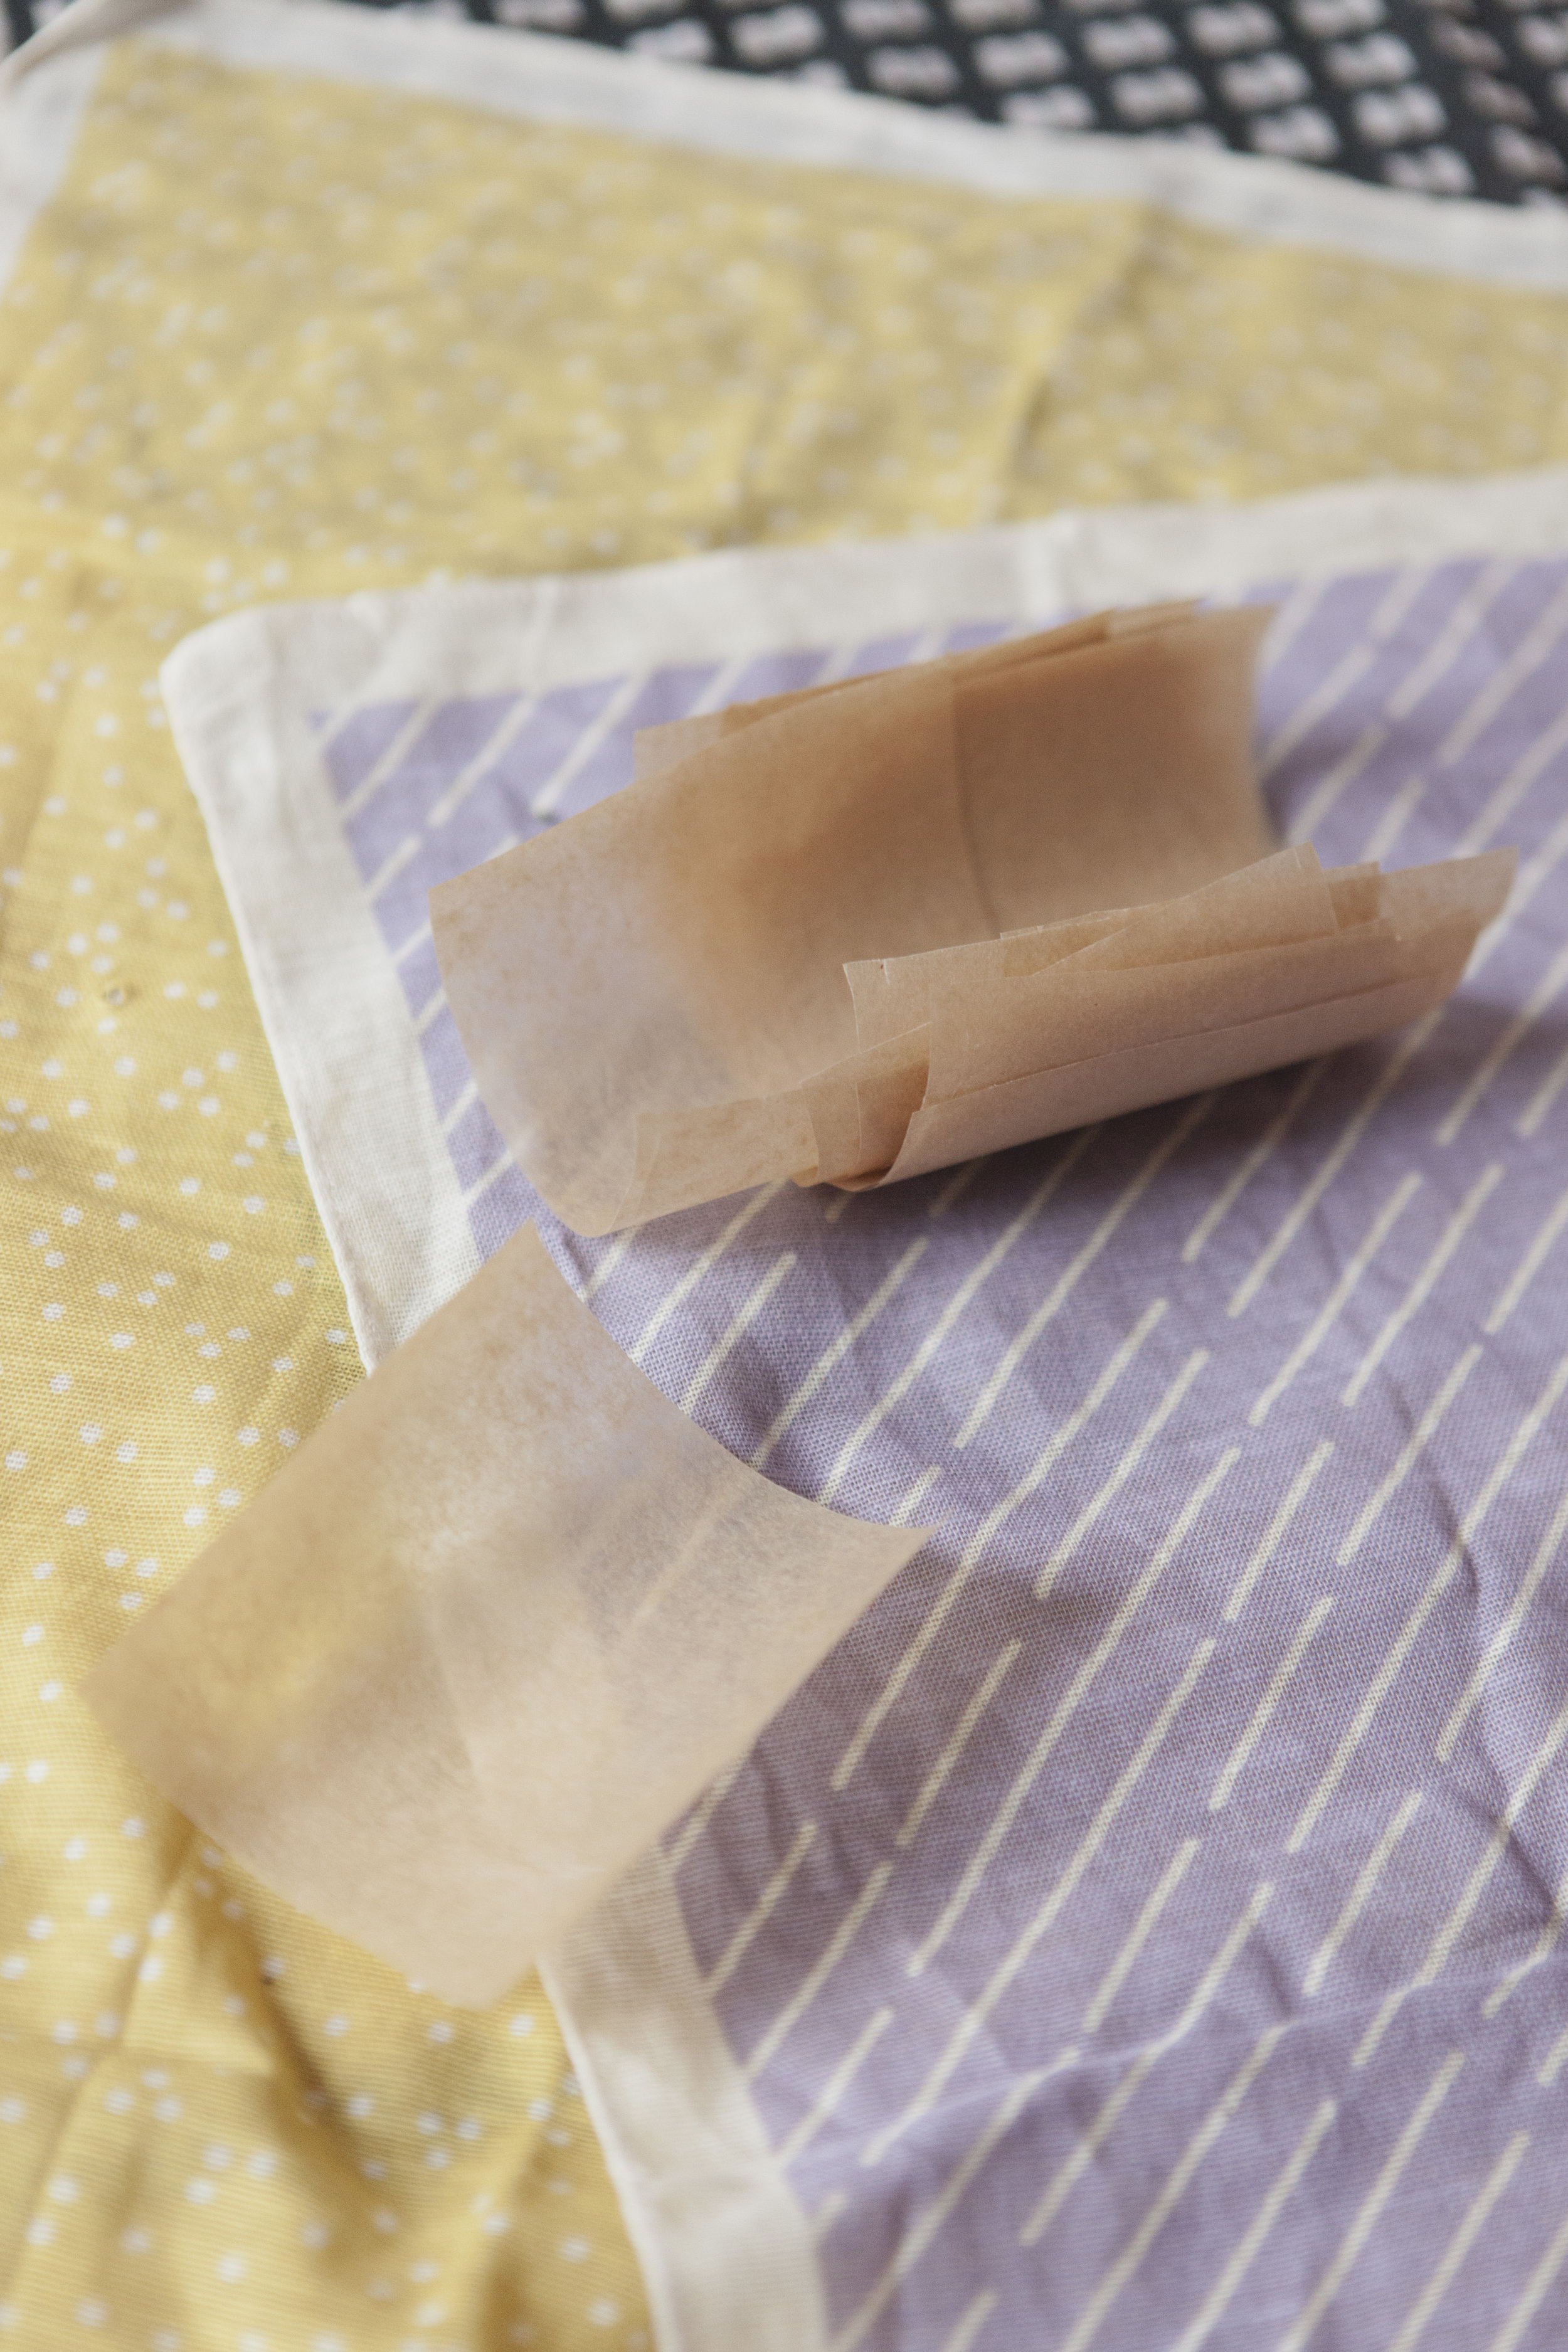 Make little squares of parchment paper for the steamer while the dough is rising.